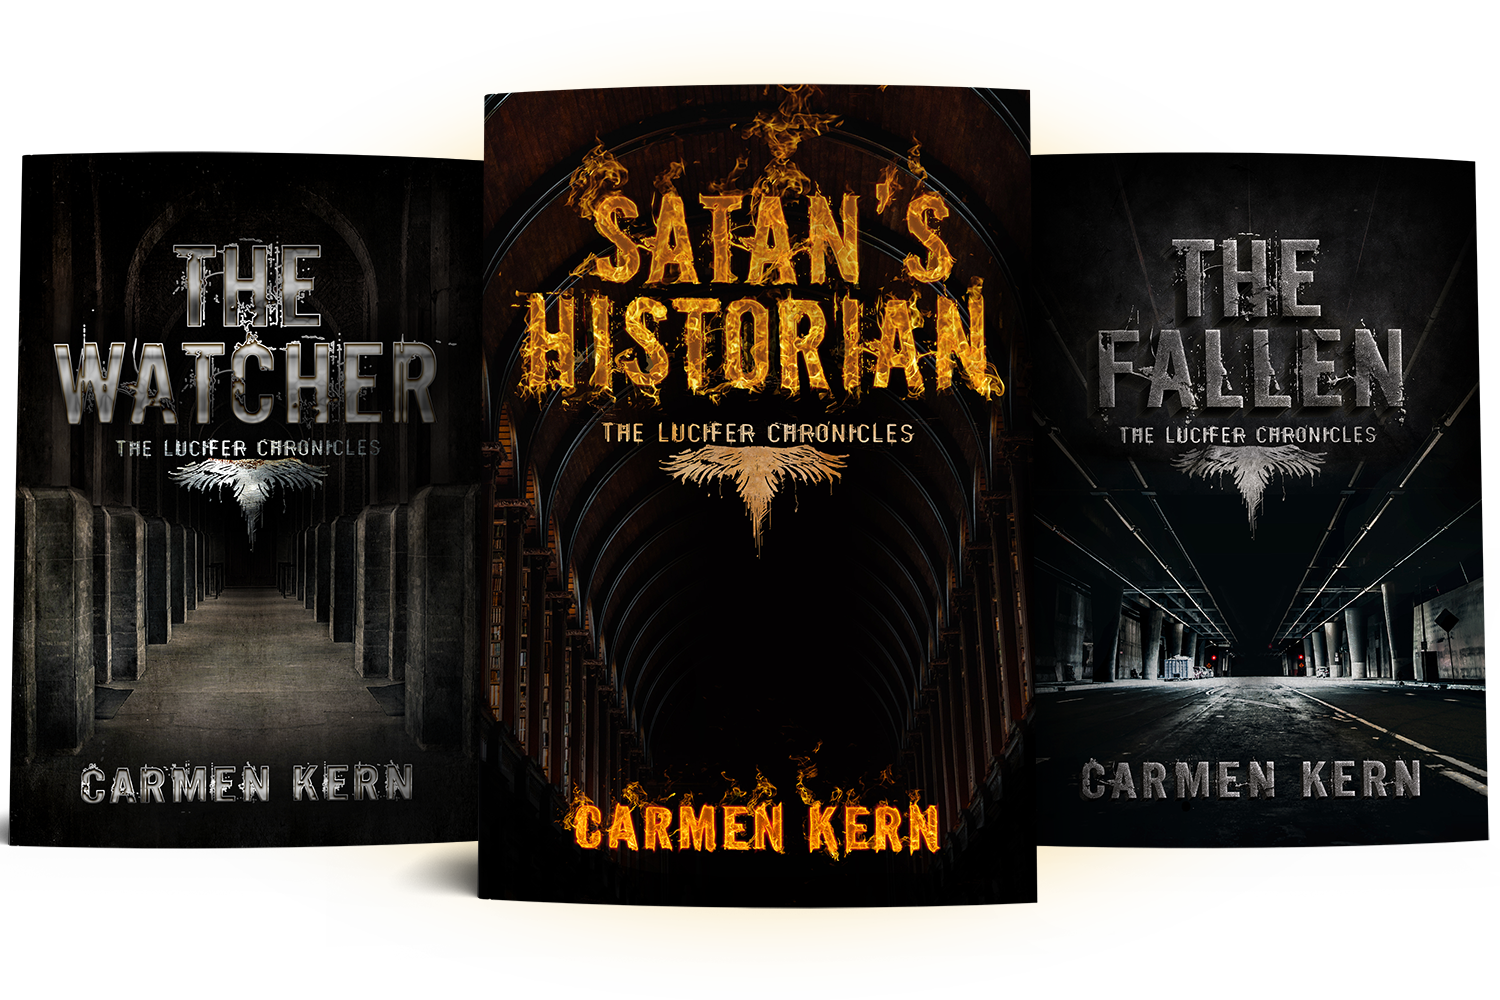 The Lucifer Chronicles Trilogy